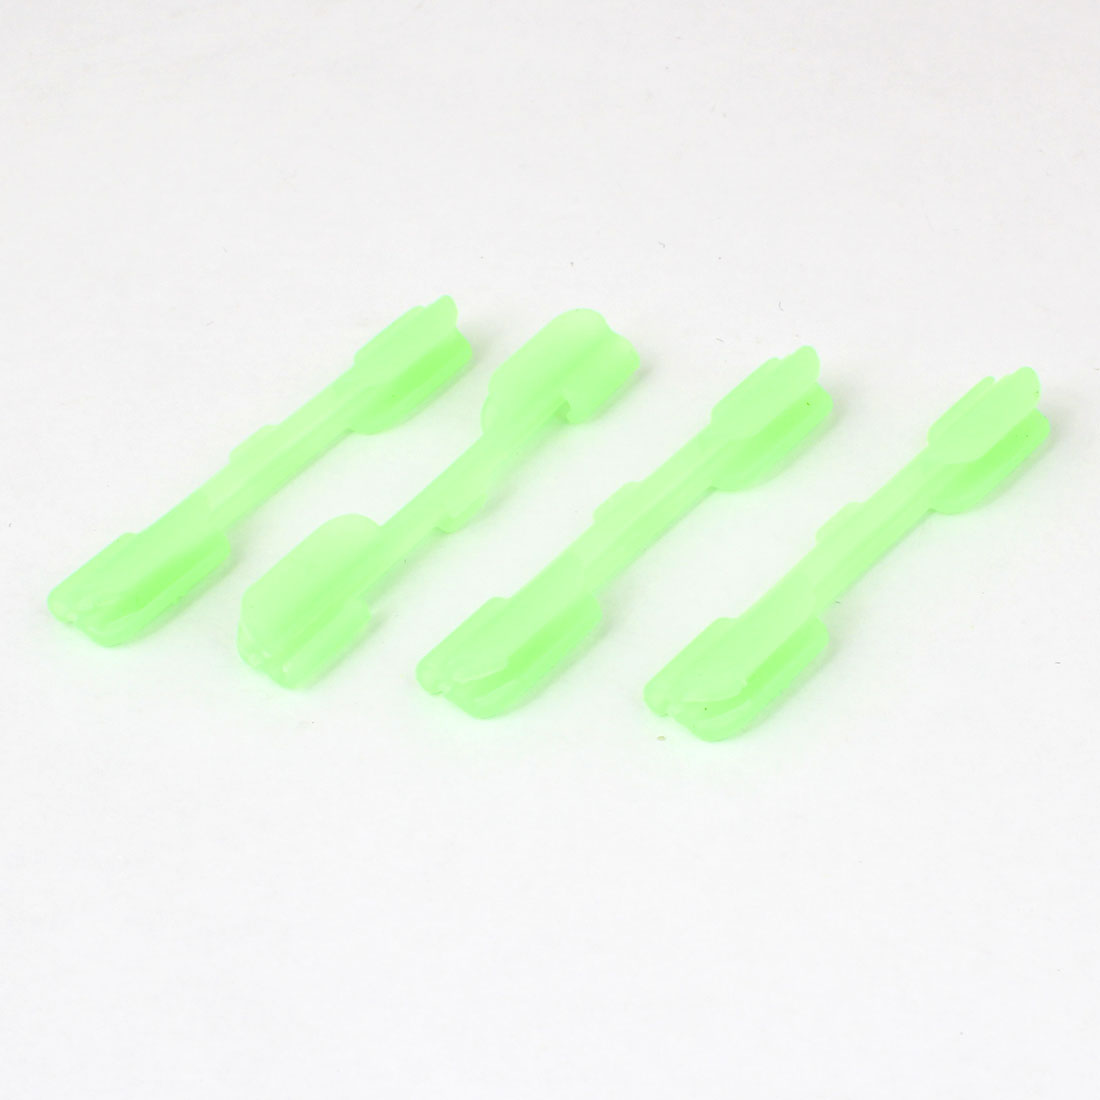 45mm Long Light Green Fluorescent Luminous Plastic Sleeve Tube for Fishing 4 Pcs